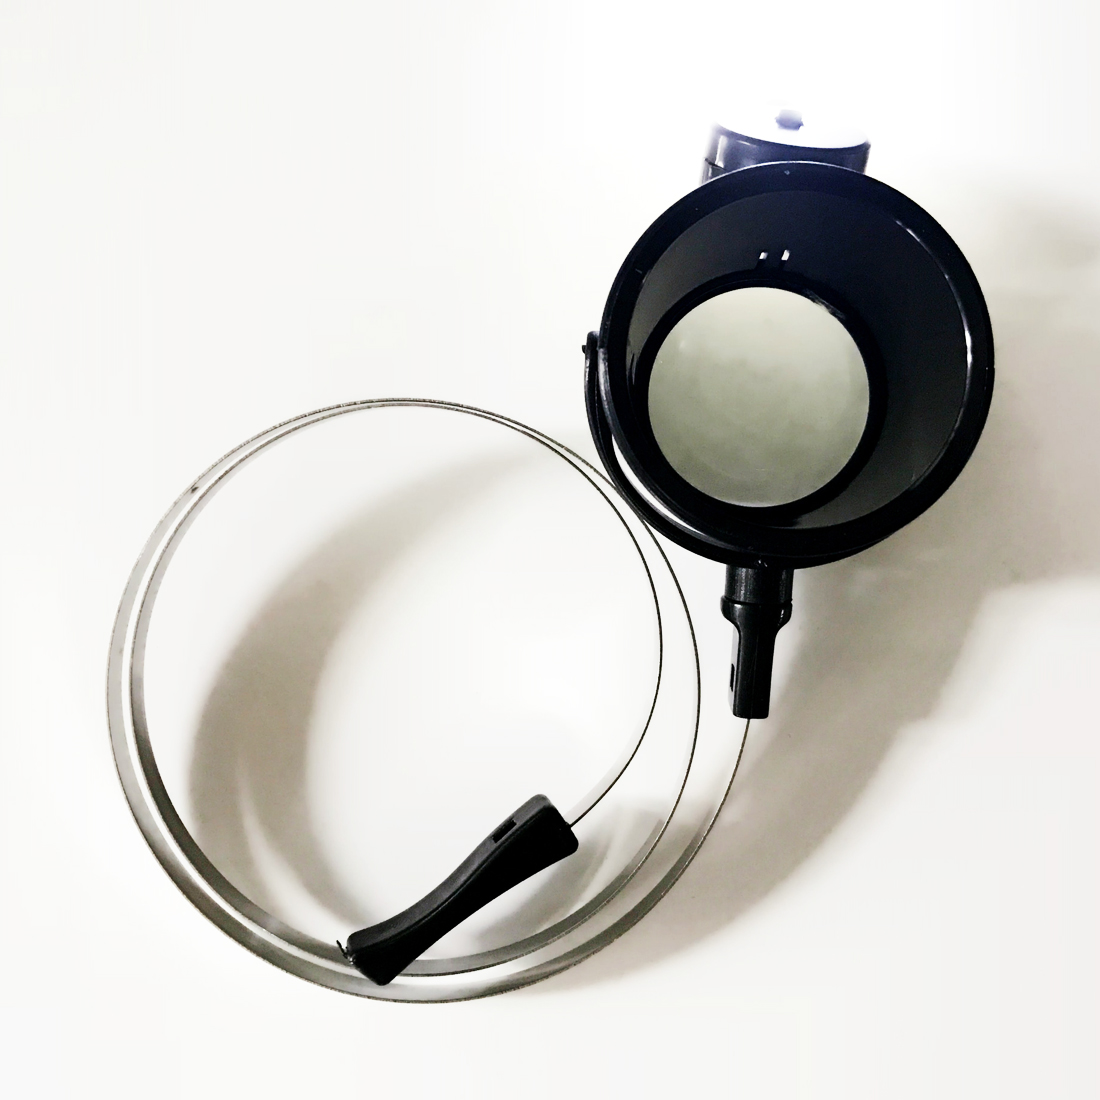 New High quality Led Lighted 15X Eye-Loupe Hands-Free Head Band Magnifier With 2CR1620 Lithium Metal Battery